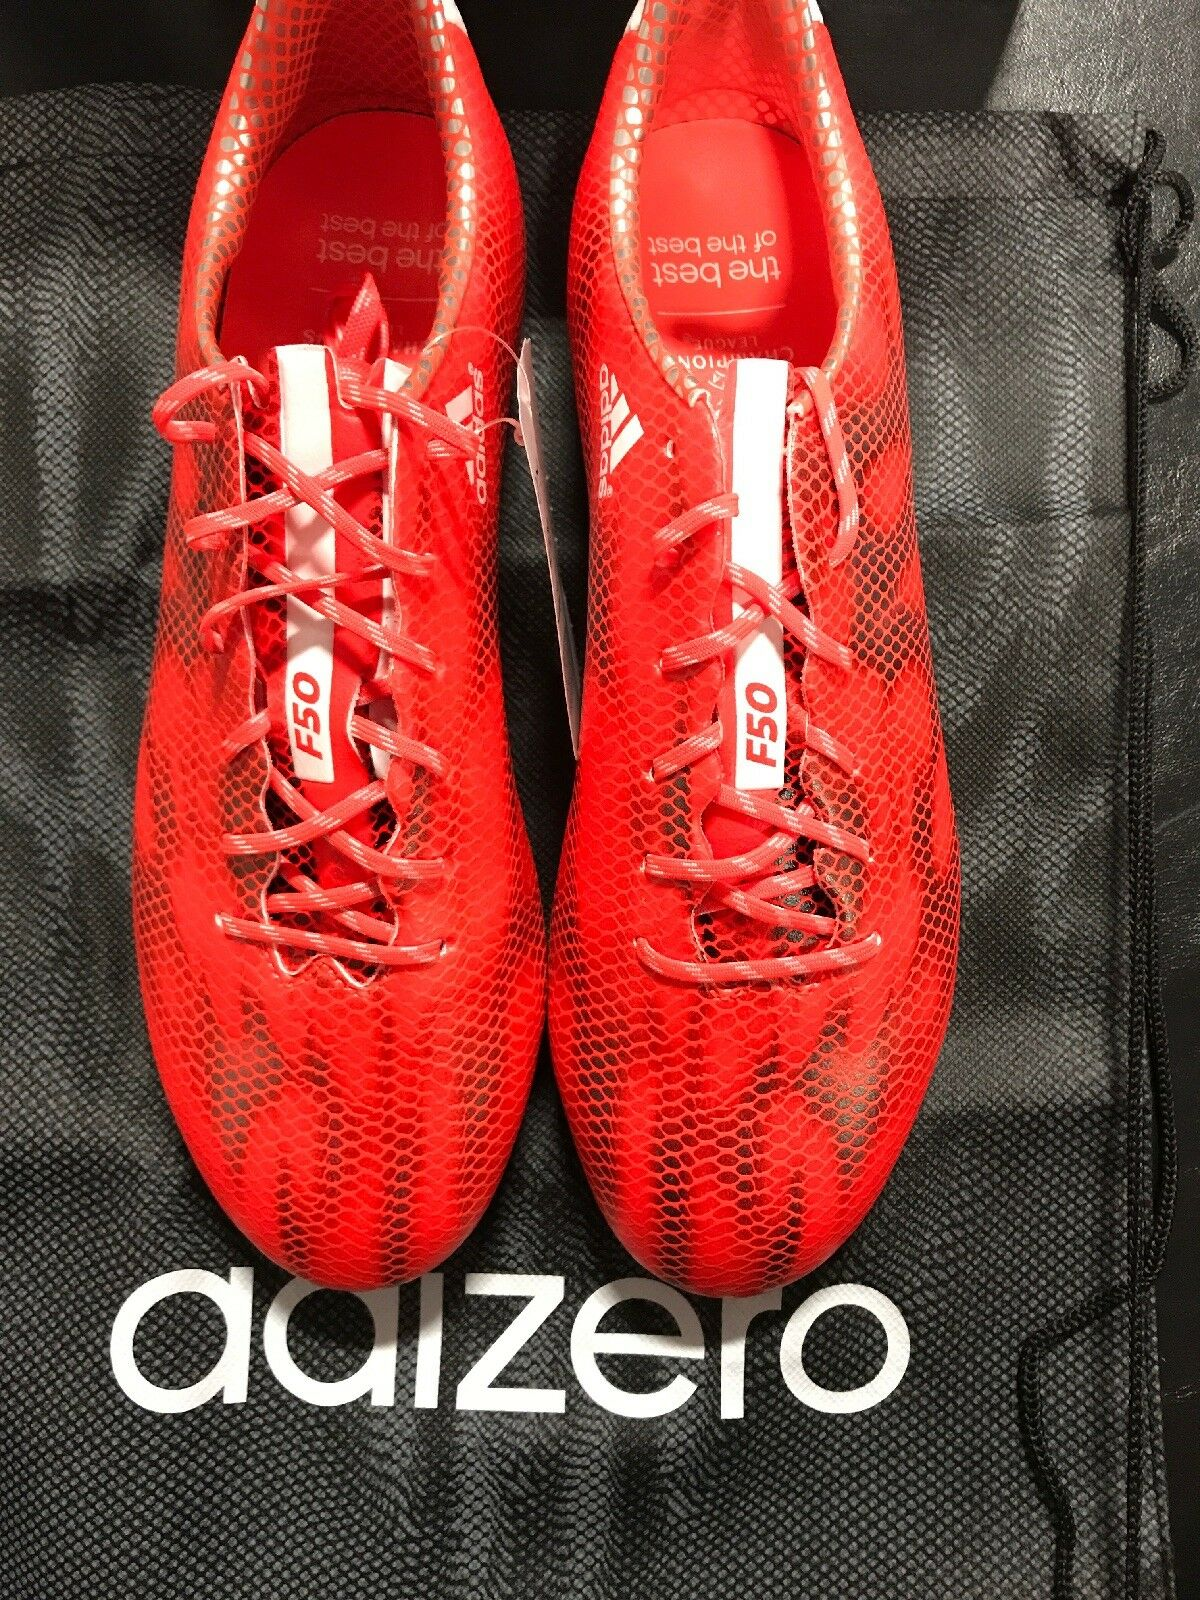 0d4823d056b adidas F50 Adizero FG Soccer Cleats UEFA Champions League Solar Red Mens  B34853 8 for sale online